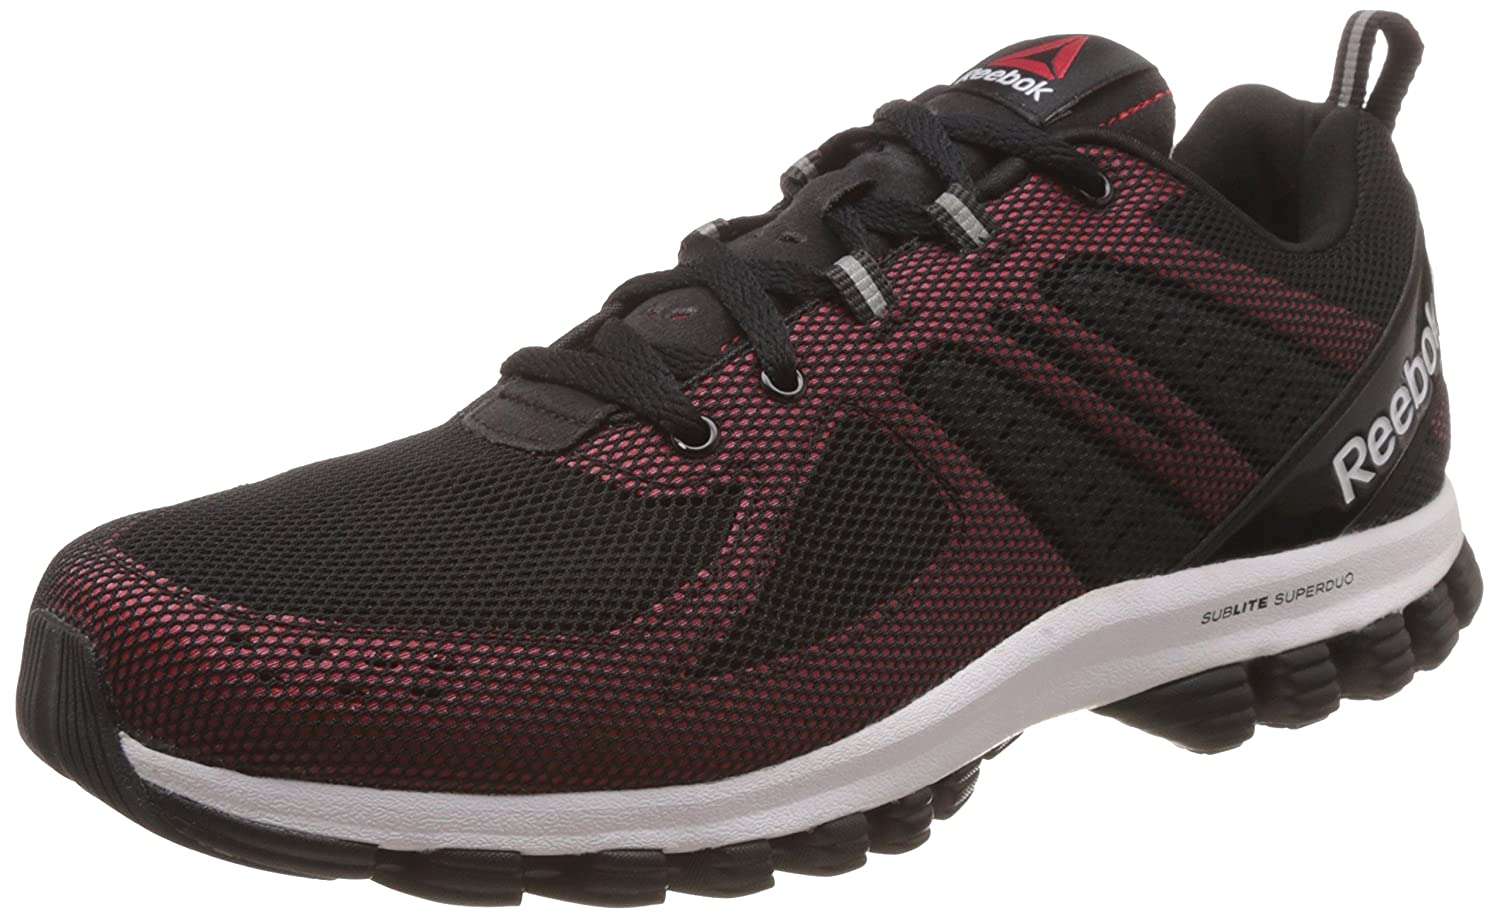 Reebok Sublite Super Duo 2.0 - schwarz - 43